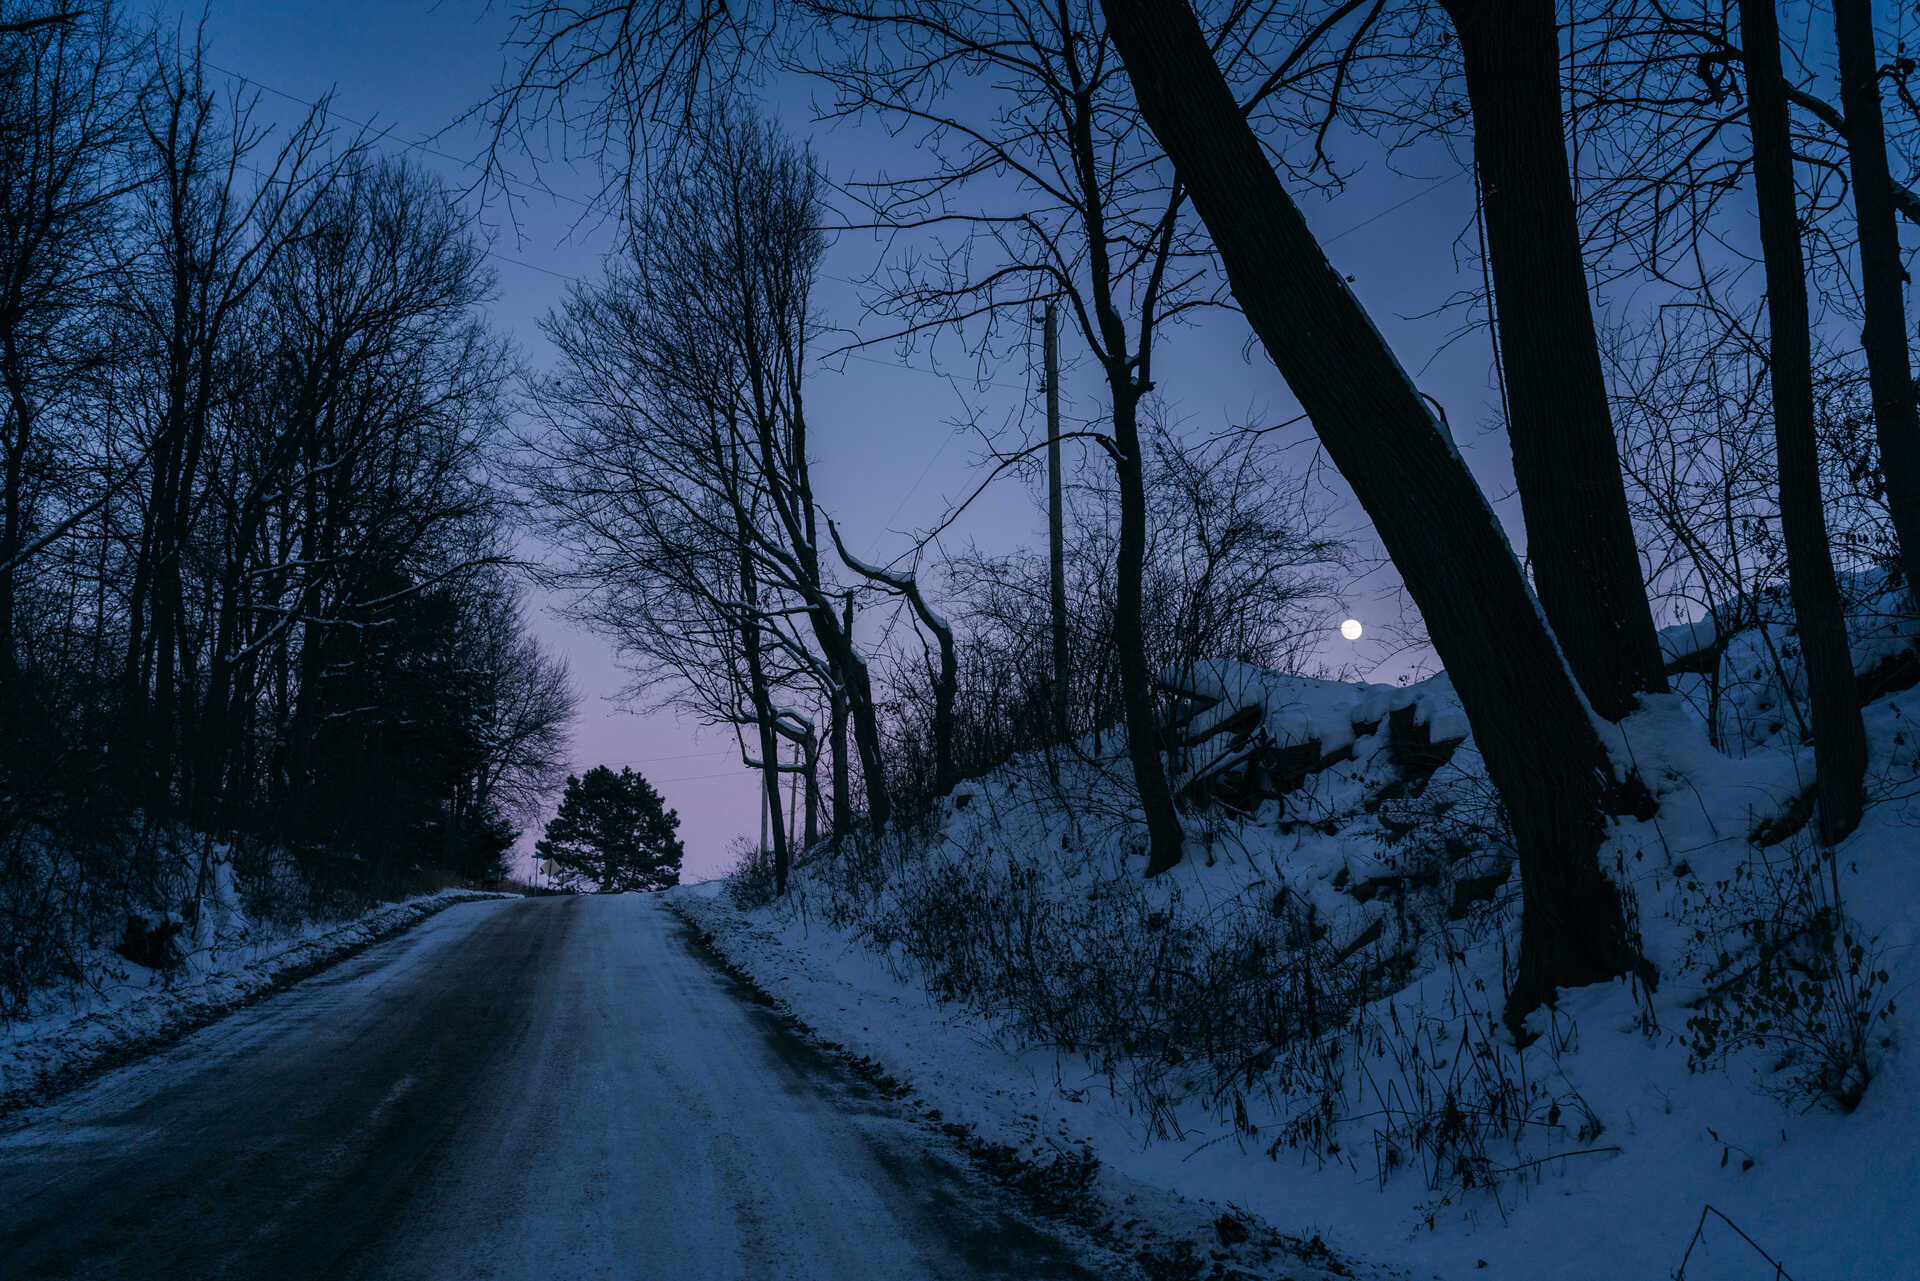 Snowy, rural road at Blue hour near ‎⁨Magnolia⁩, ⁨Illinois